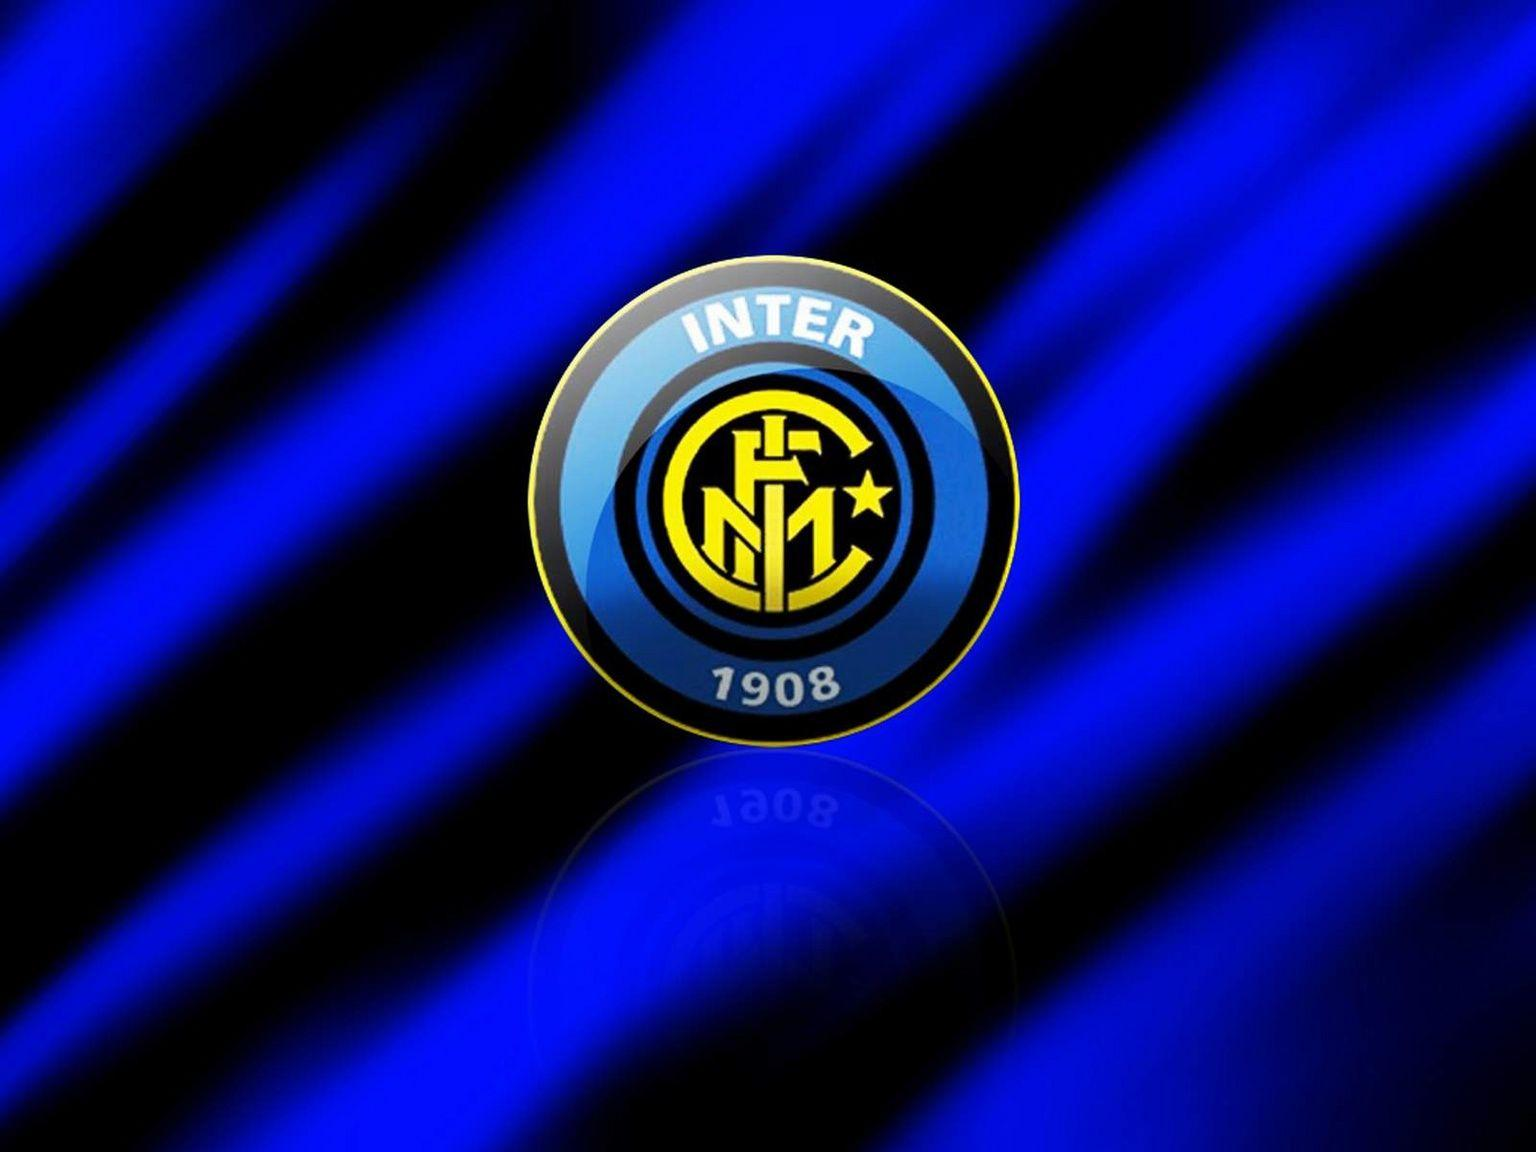 Inter Italia Calcio wallpaper, Football Pictures and Photos